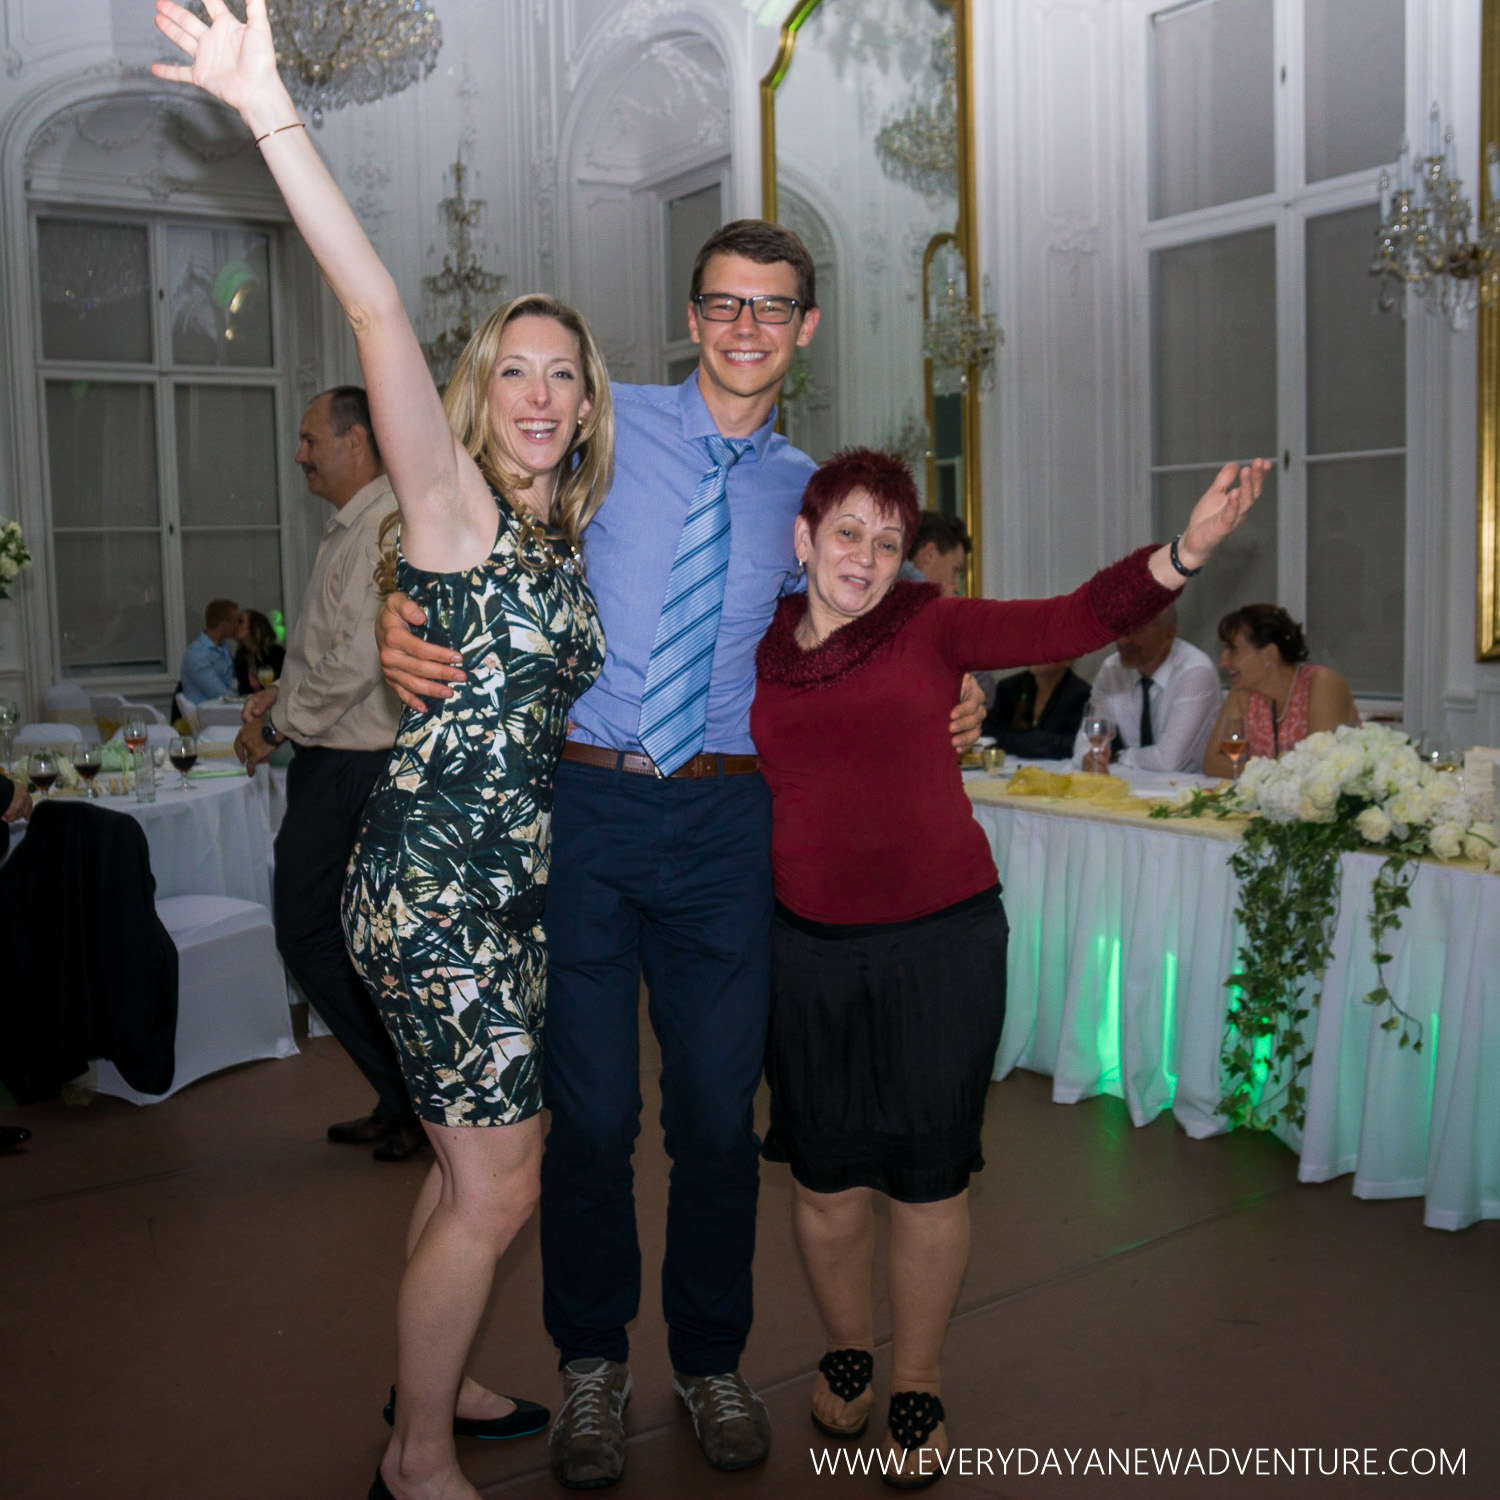 [SqSp1500-092] Budapest - Inez and Arni's Wedding!-629.jpg